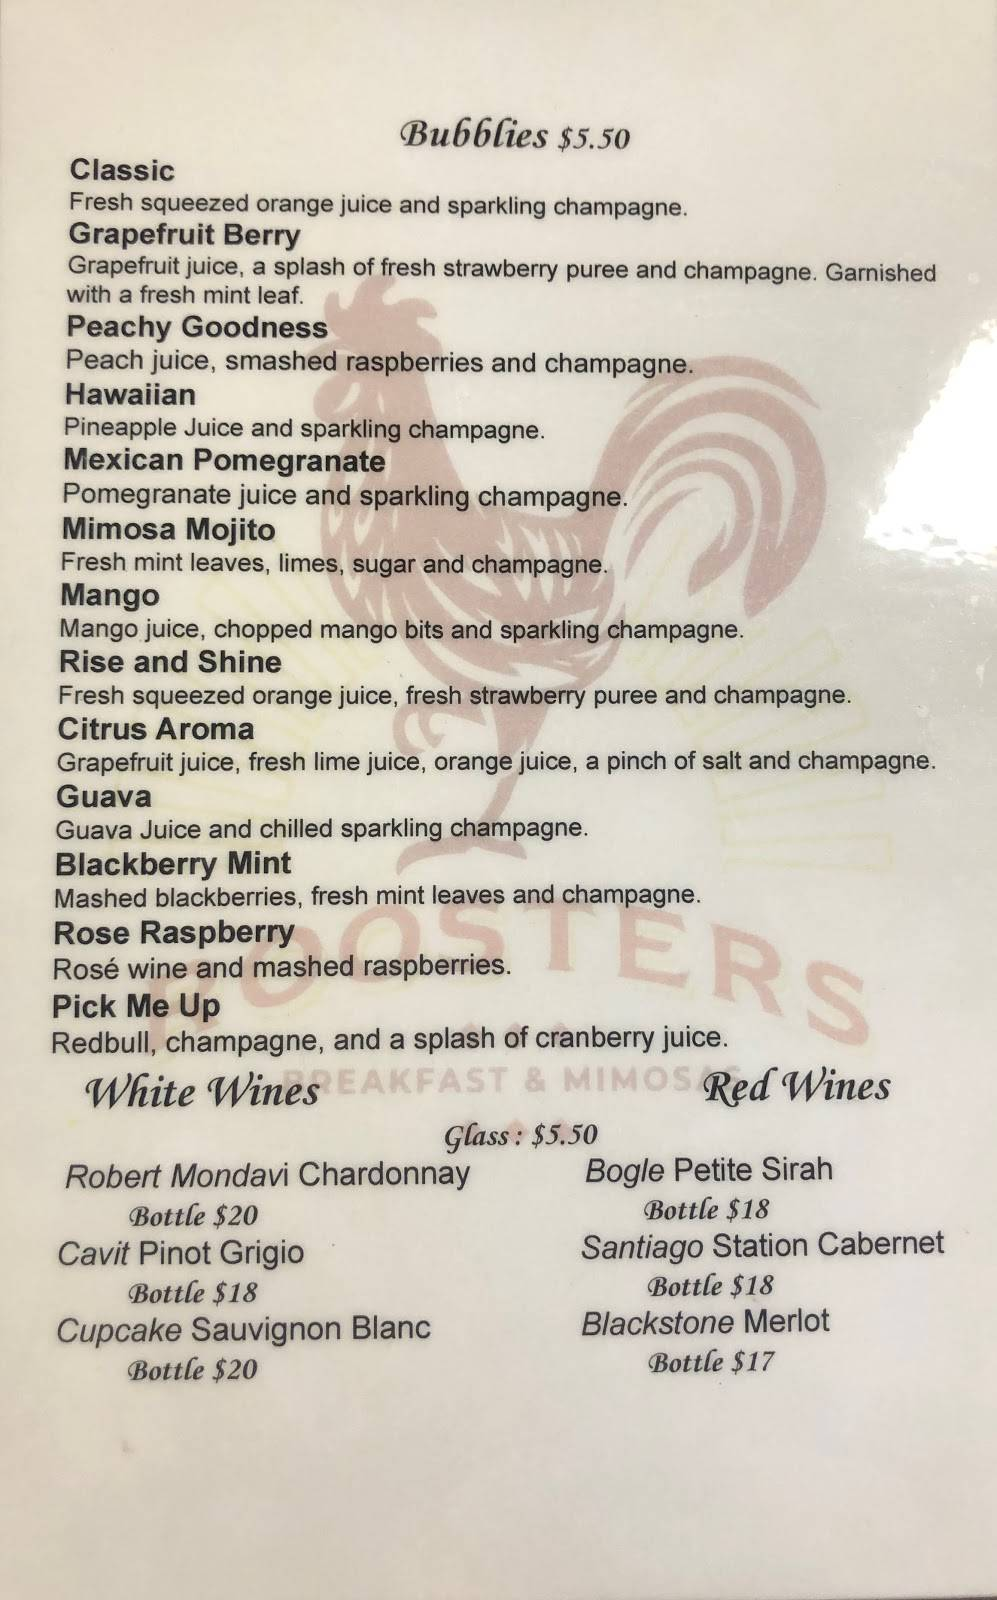 Roosters Breakfast and Mimosas | restaurant | 5493 Carlson Dr STE D, Sacramento, CA 95819, USA | 9165947281 OR +1 916-594-7281